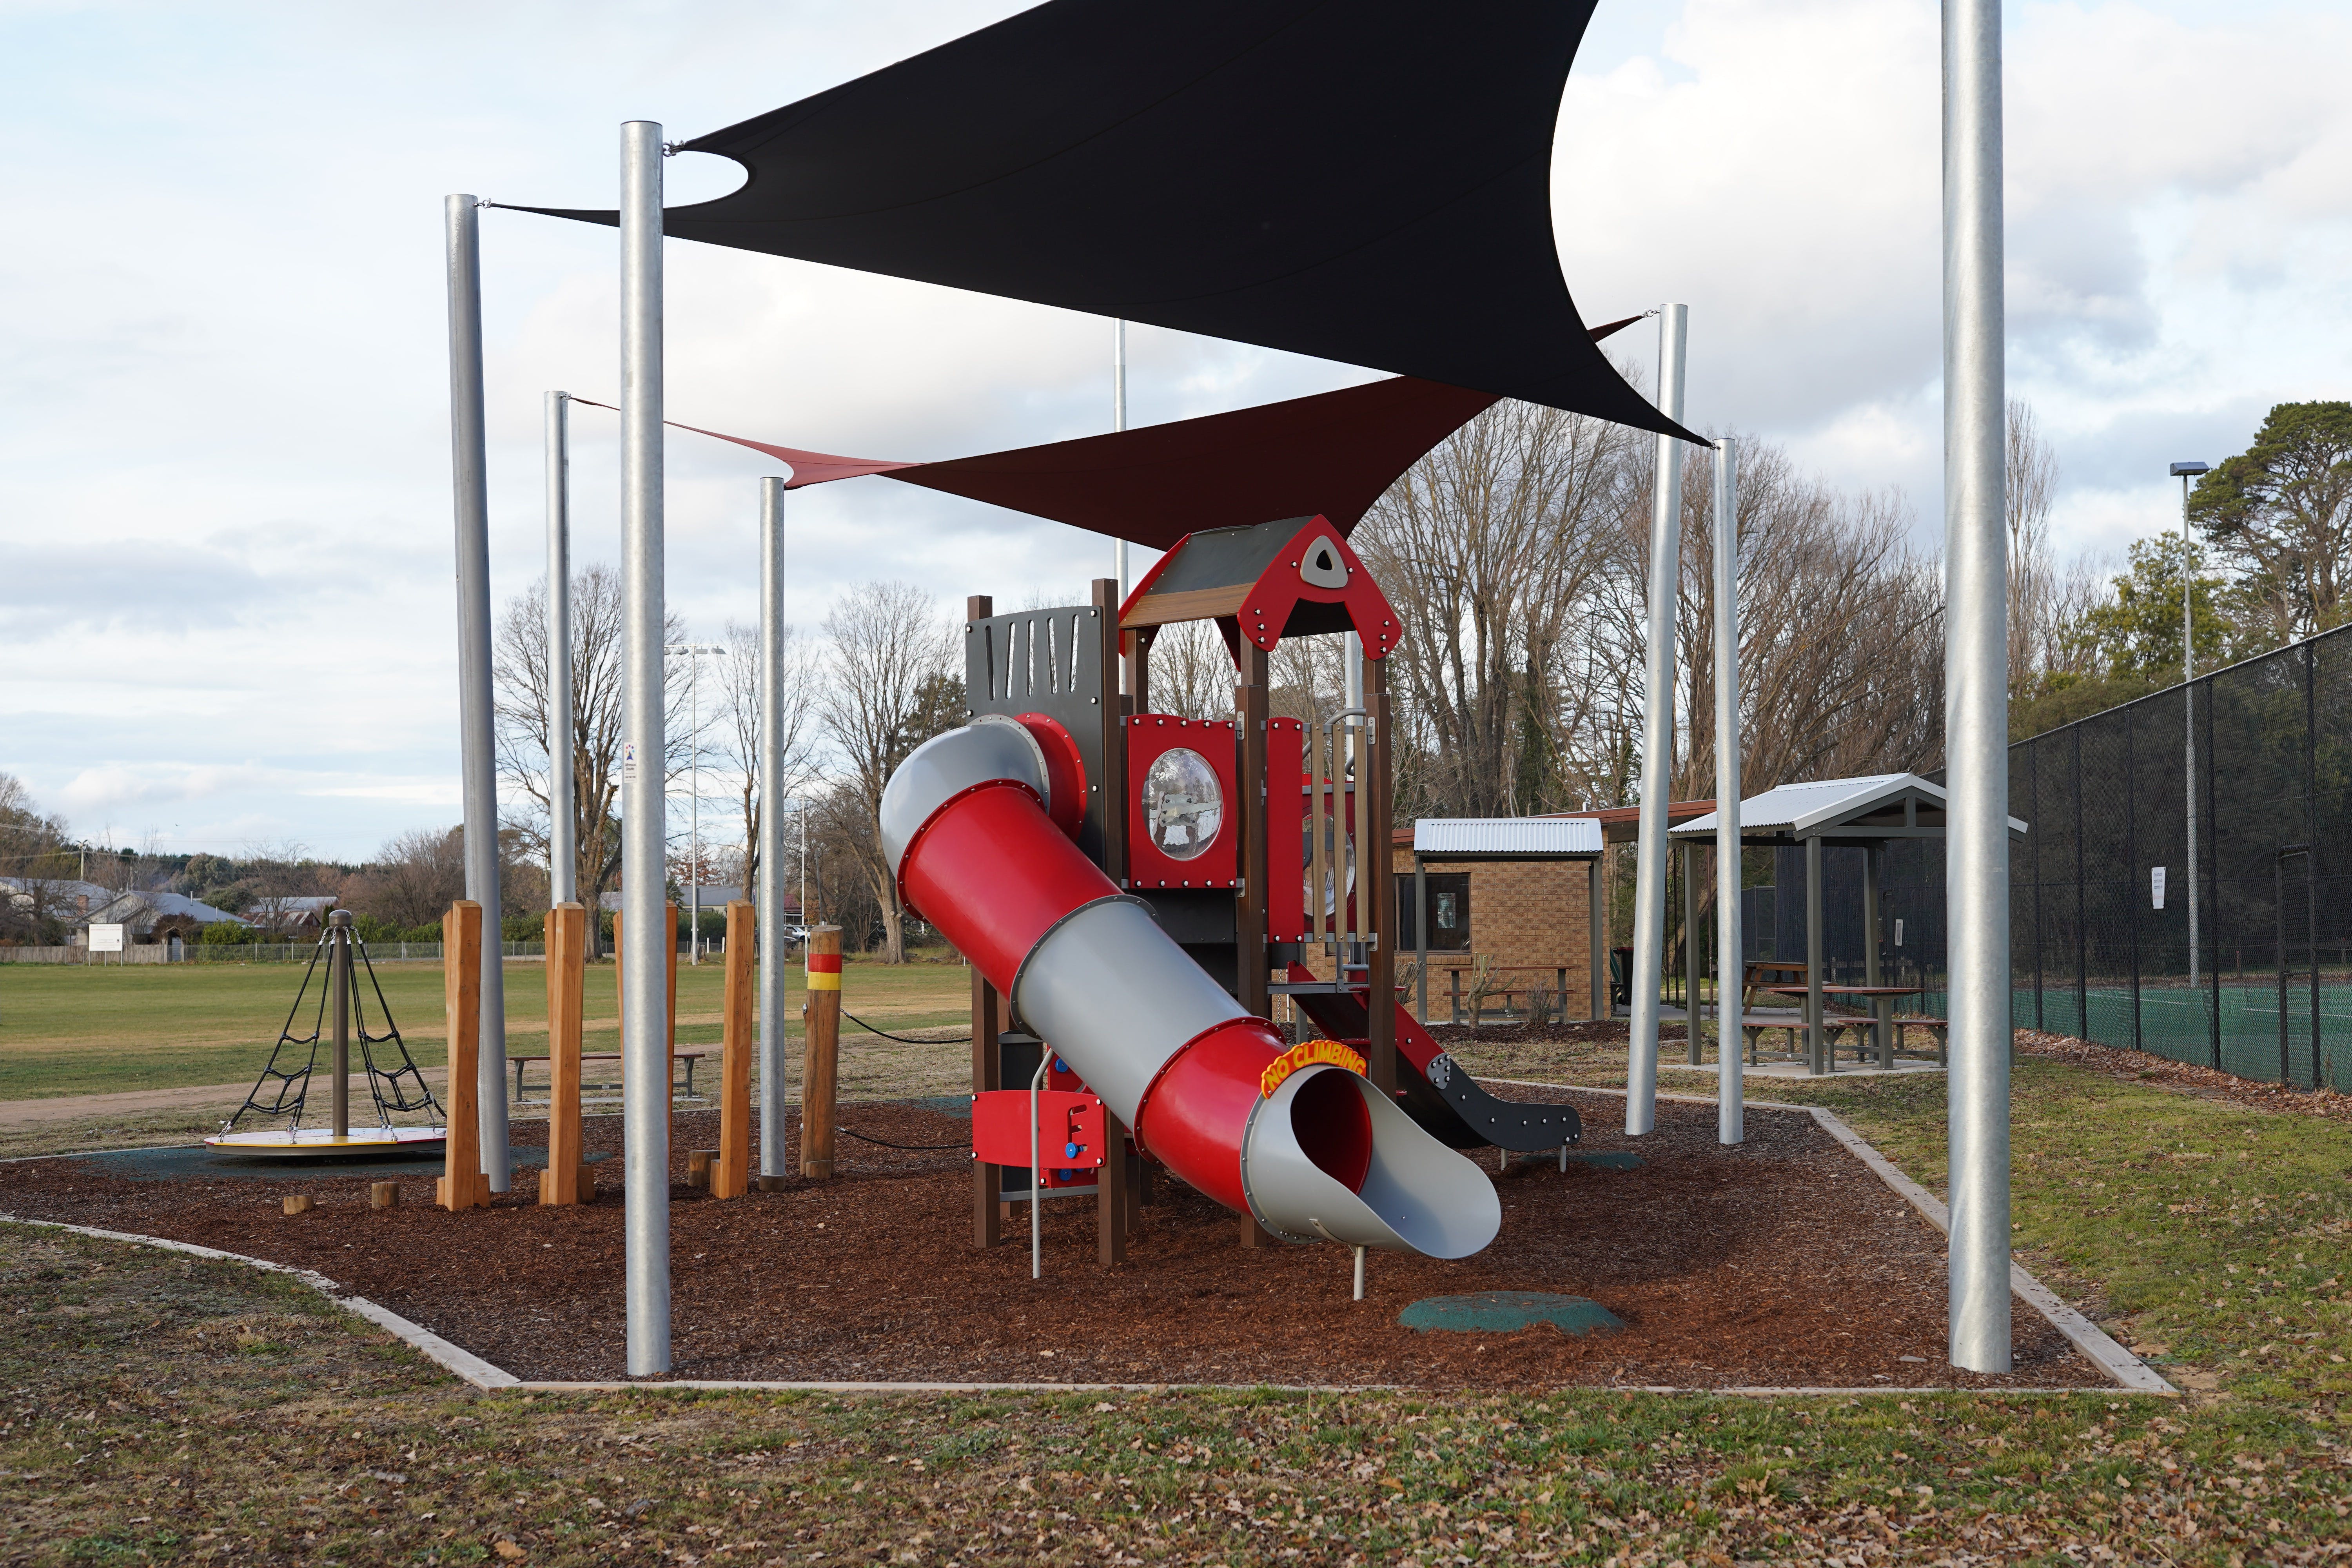 Braidwood Recreation Grounds and Playground - Surfers Paradise Gold Coast